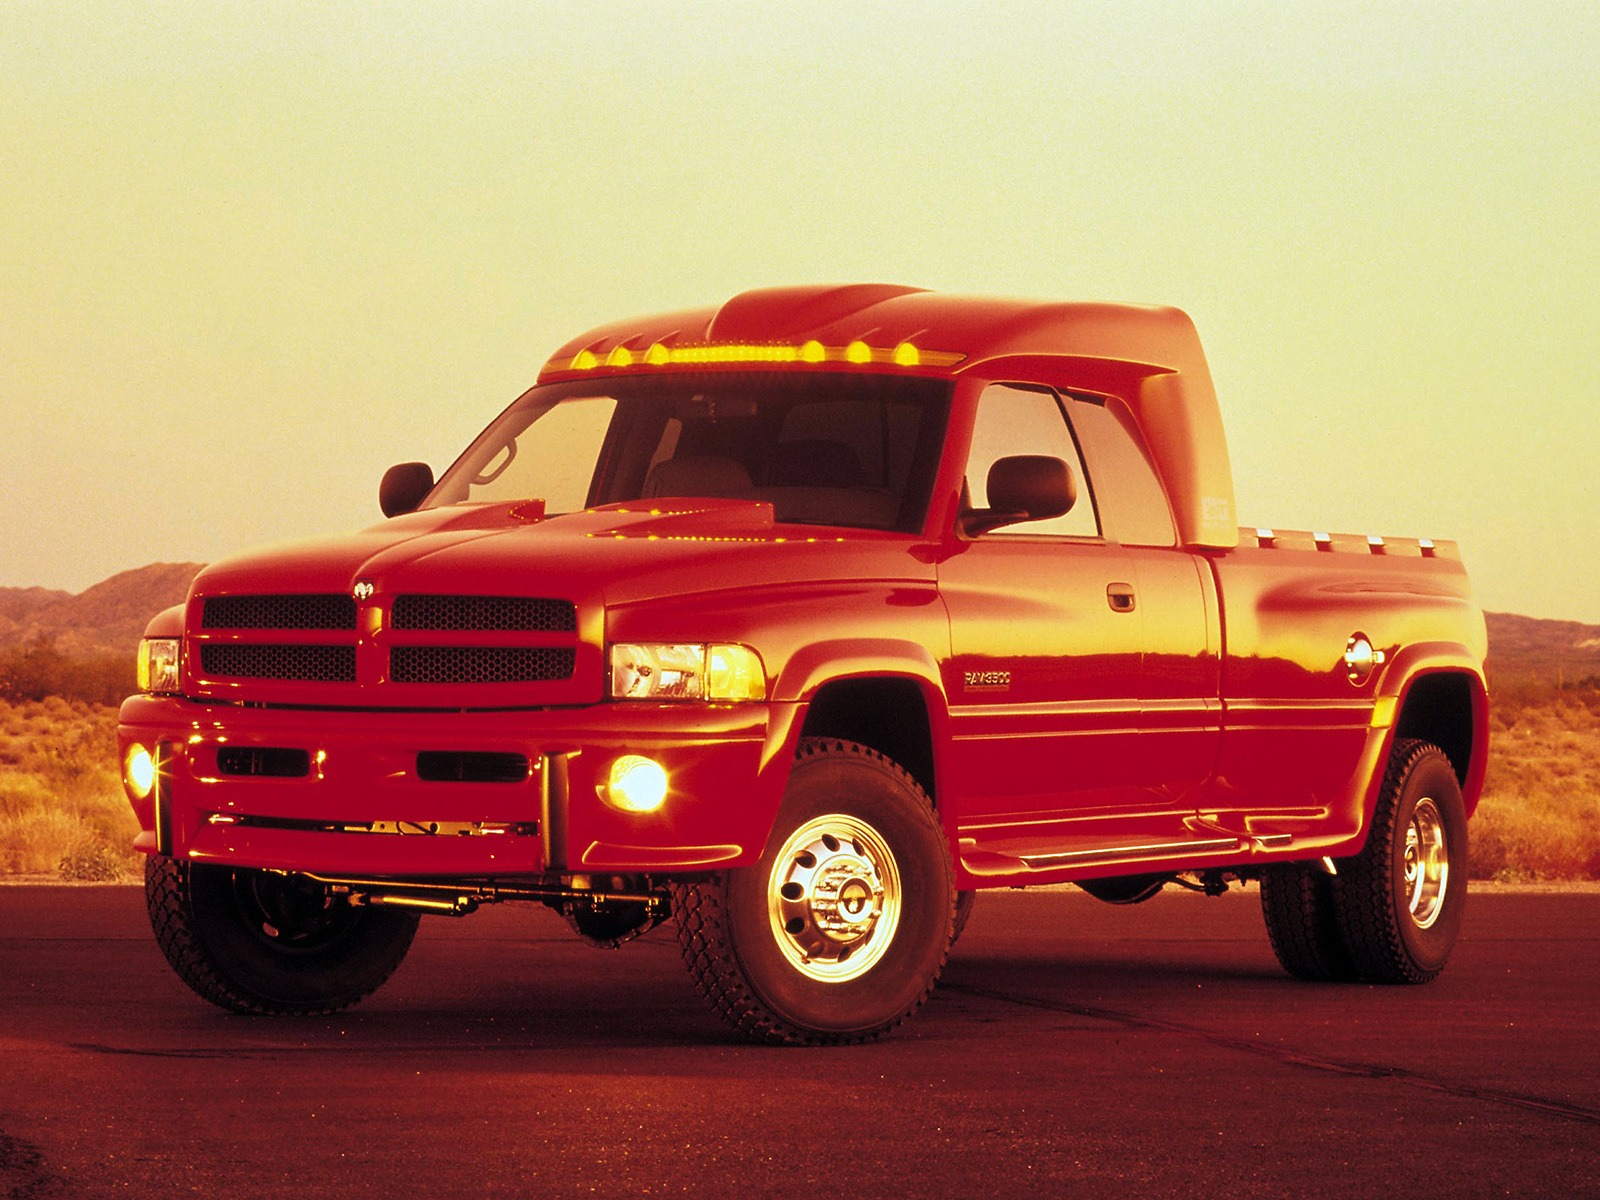 the red truck If you find yourself in a situation where you need to be towed, call us day or night at 810-984-1593 our dispatcher will have a big red truck on its way fast.